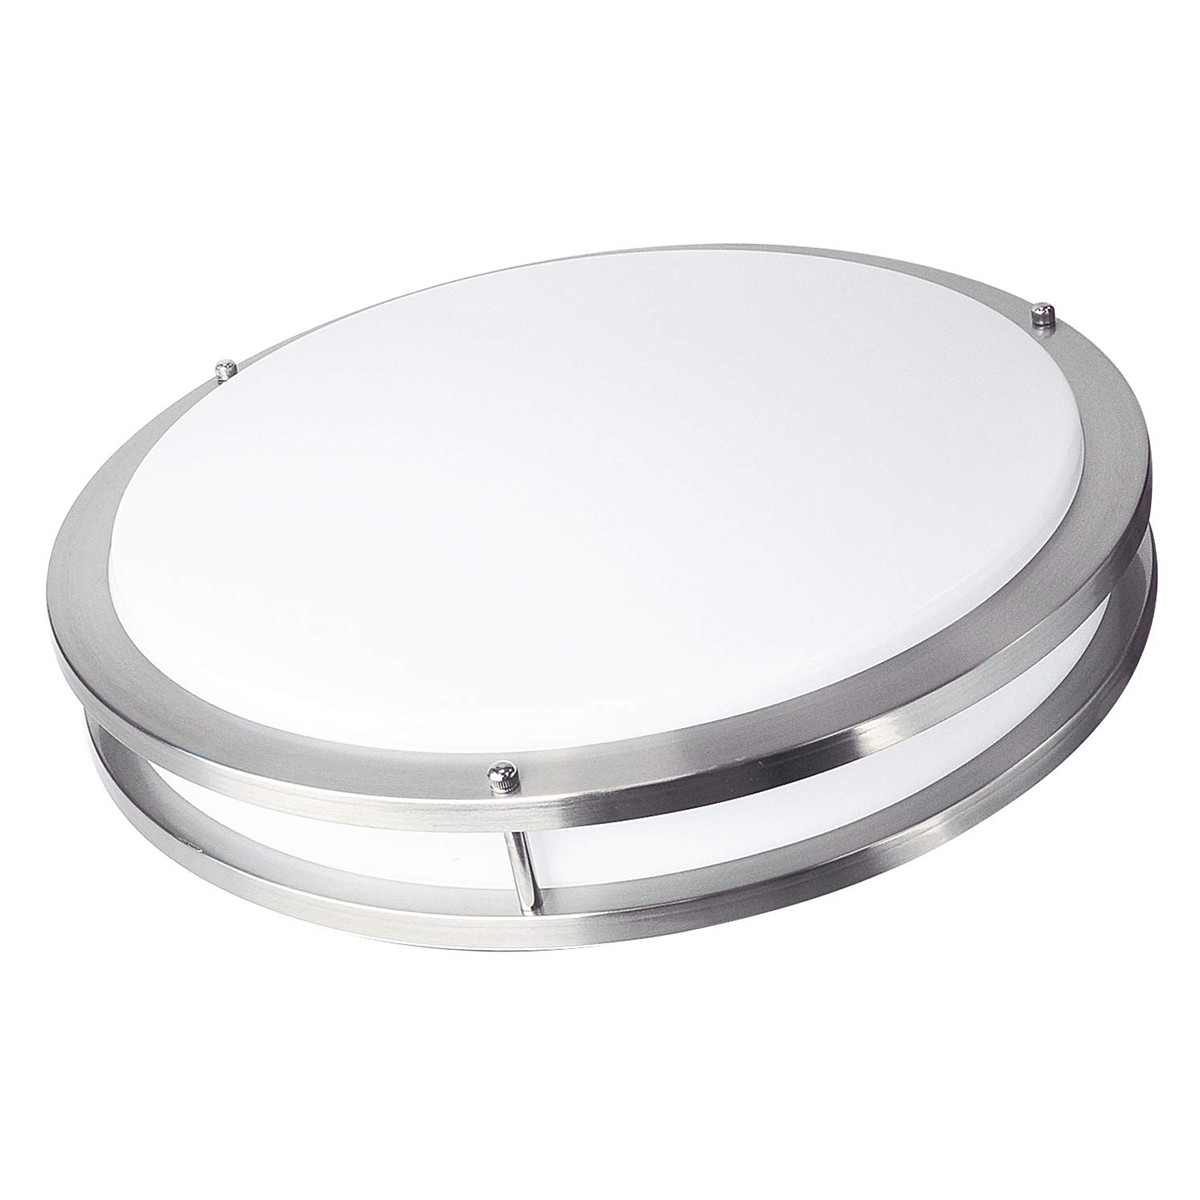 24w Led Dimmable Ceiling Light Round Flush Mounted Fixture: 24W 16inch 80Lm/W ,Flush Mount, Round Nickel Finish With